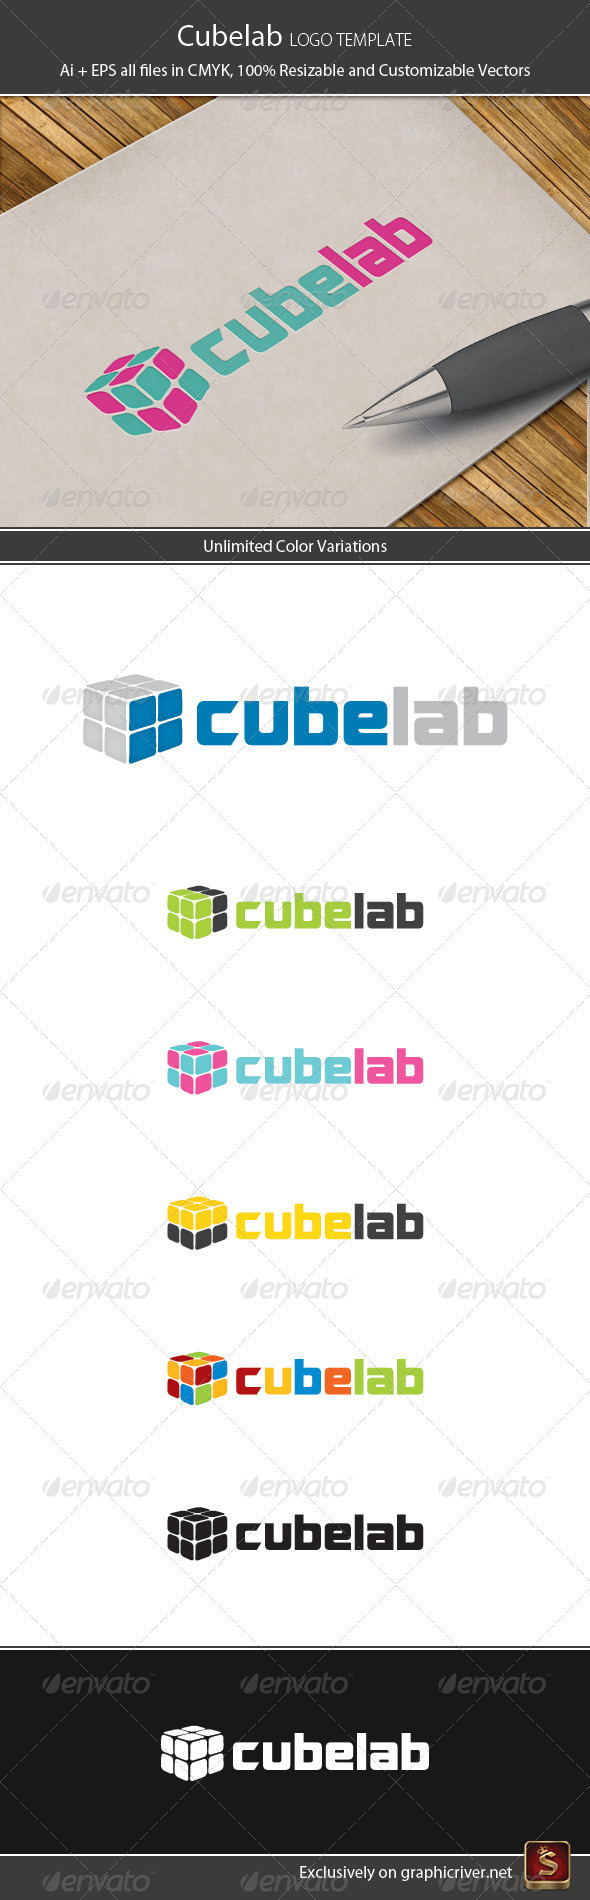 Cube Lab Logo Template - Vector Abstract